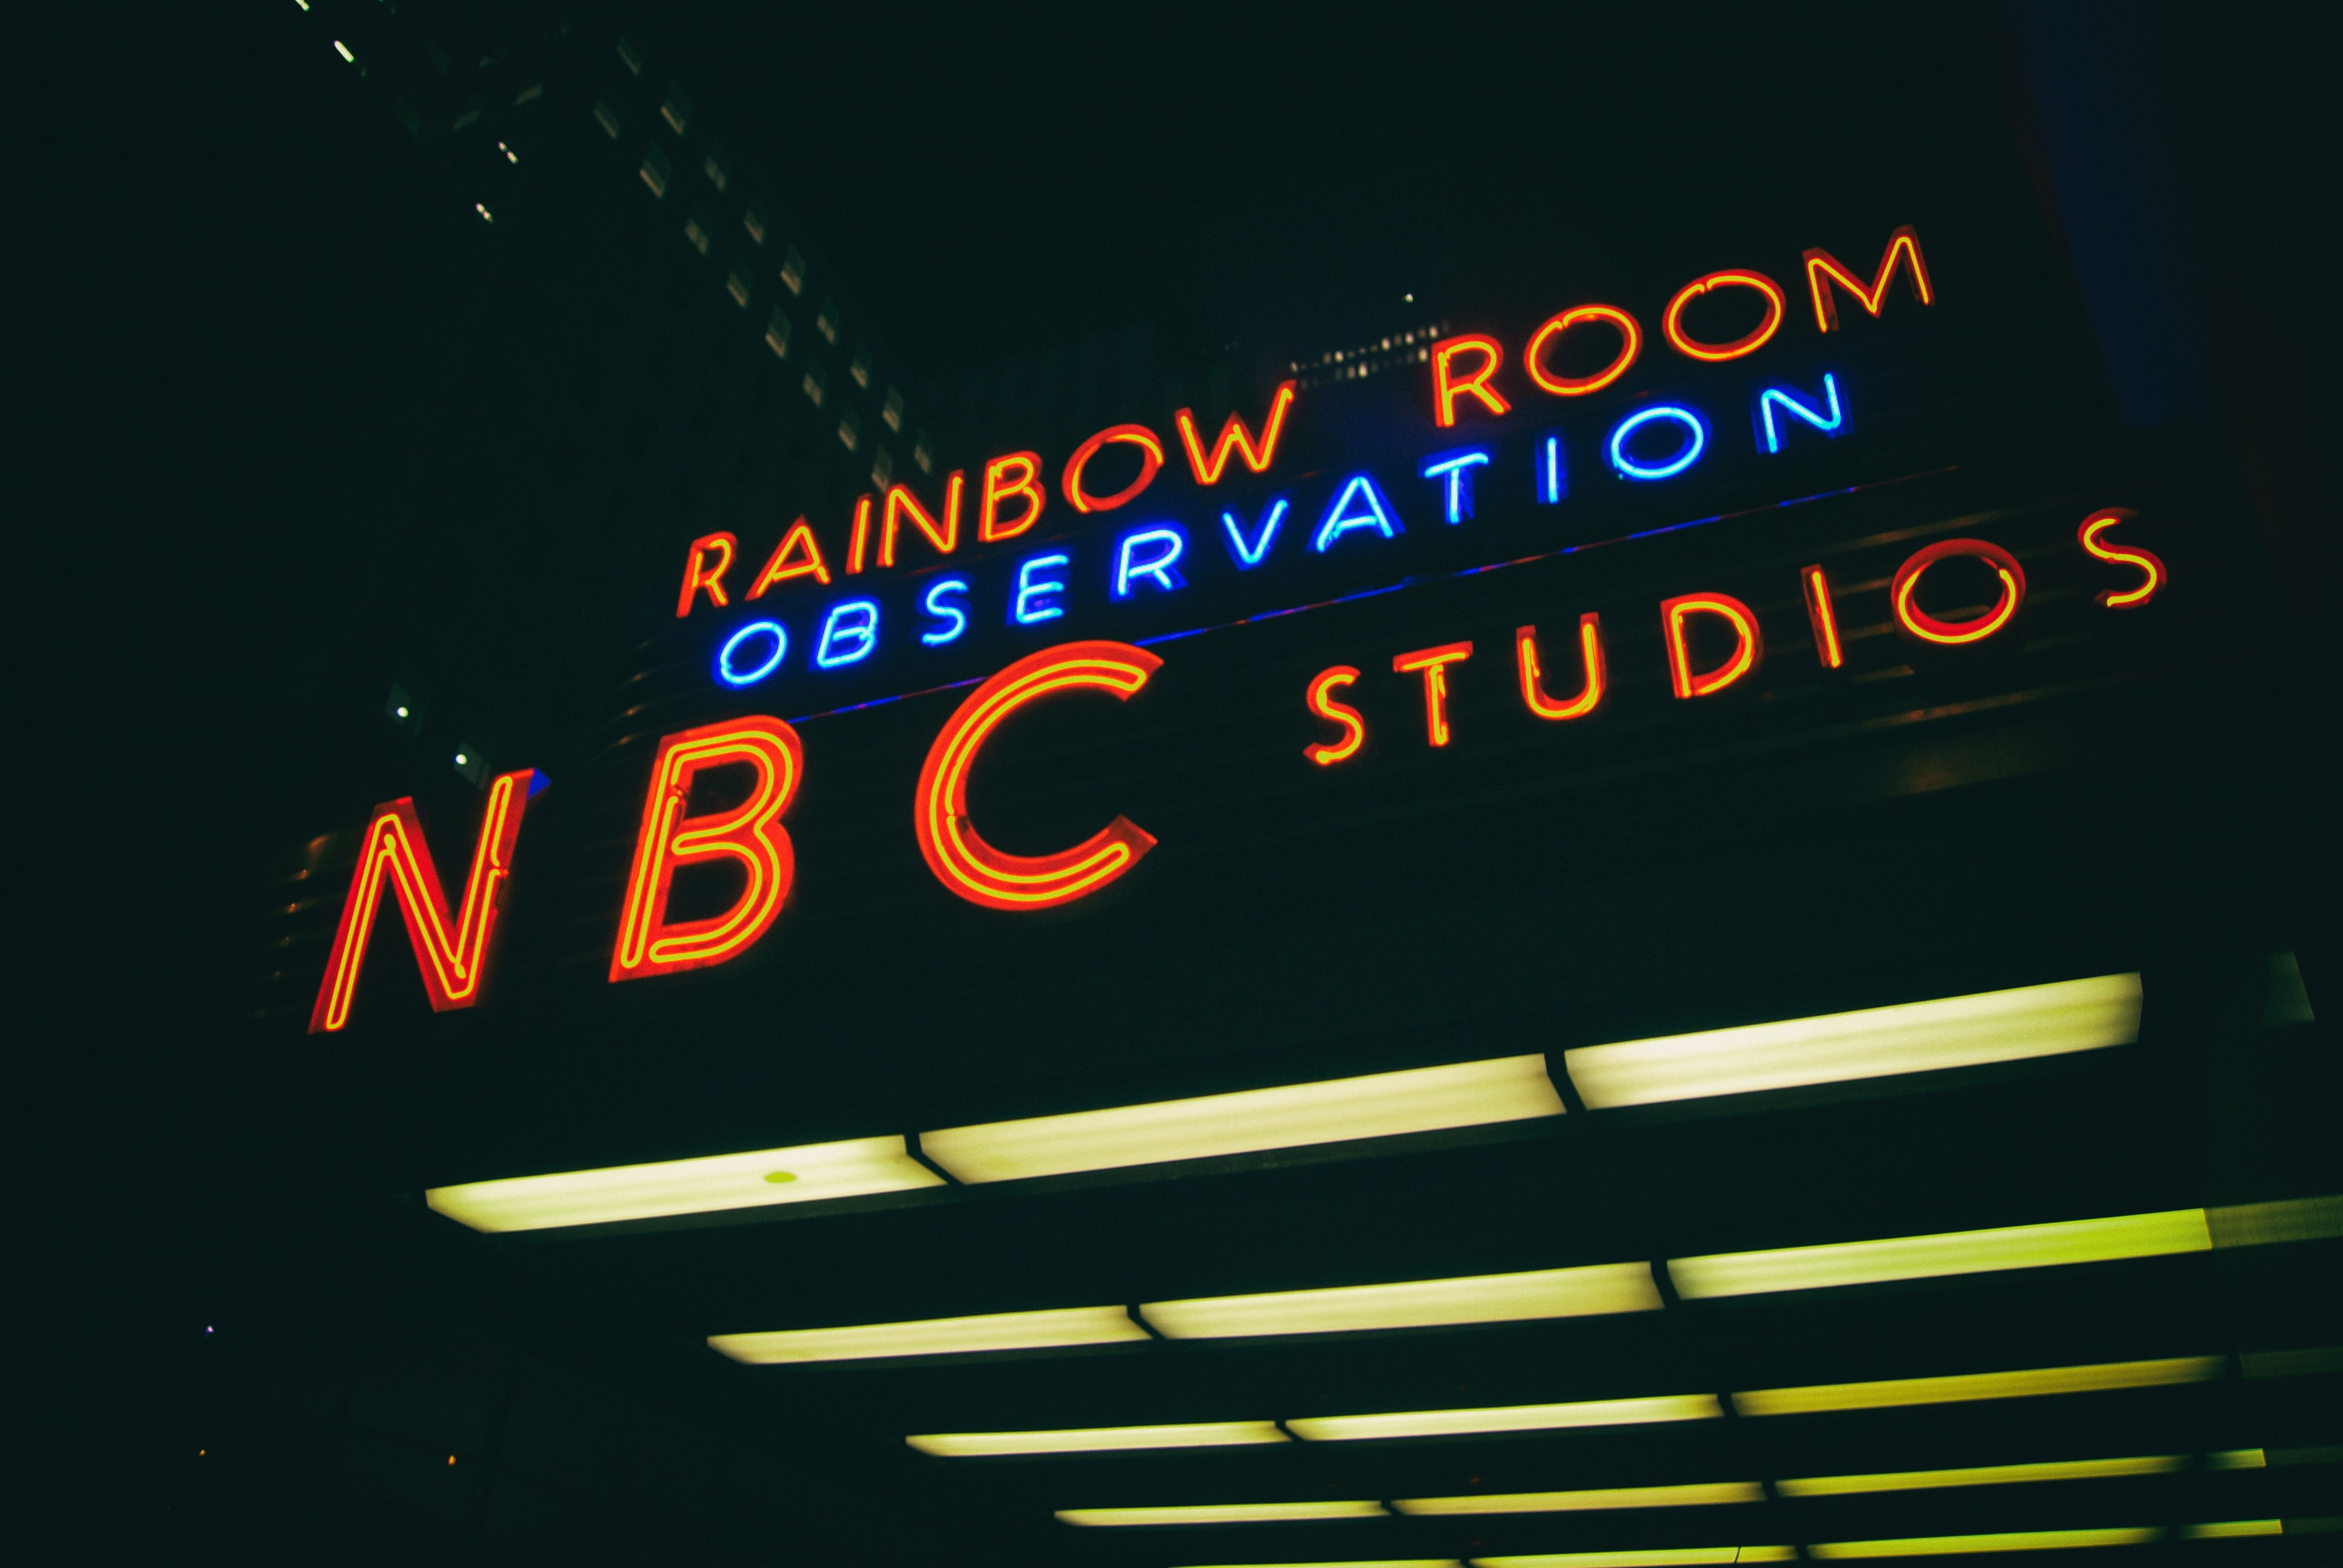 Glowing NBC Studios blue and red neon sign on building in New York City